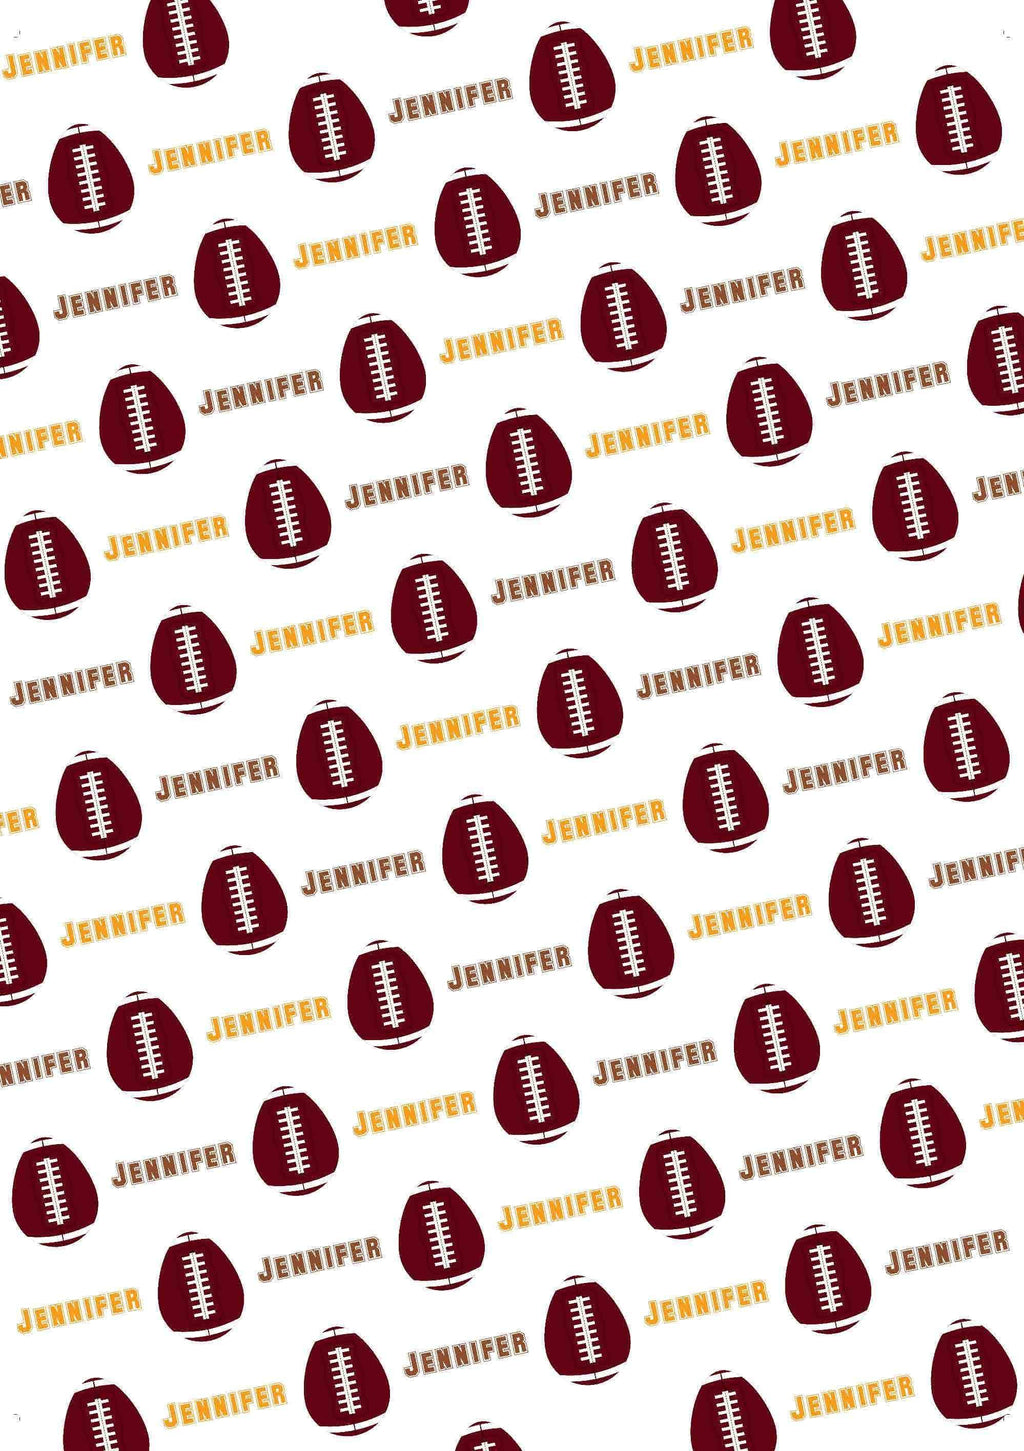 Easter Football Personalized Gift Wrap - Potter's Printing